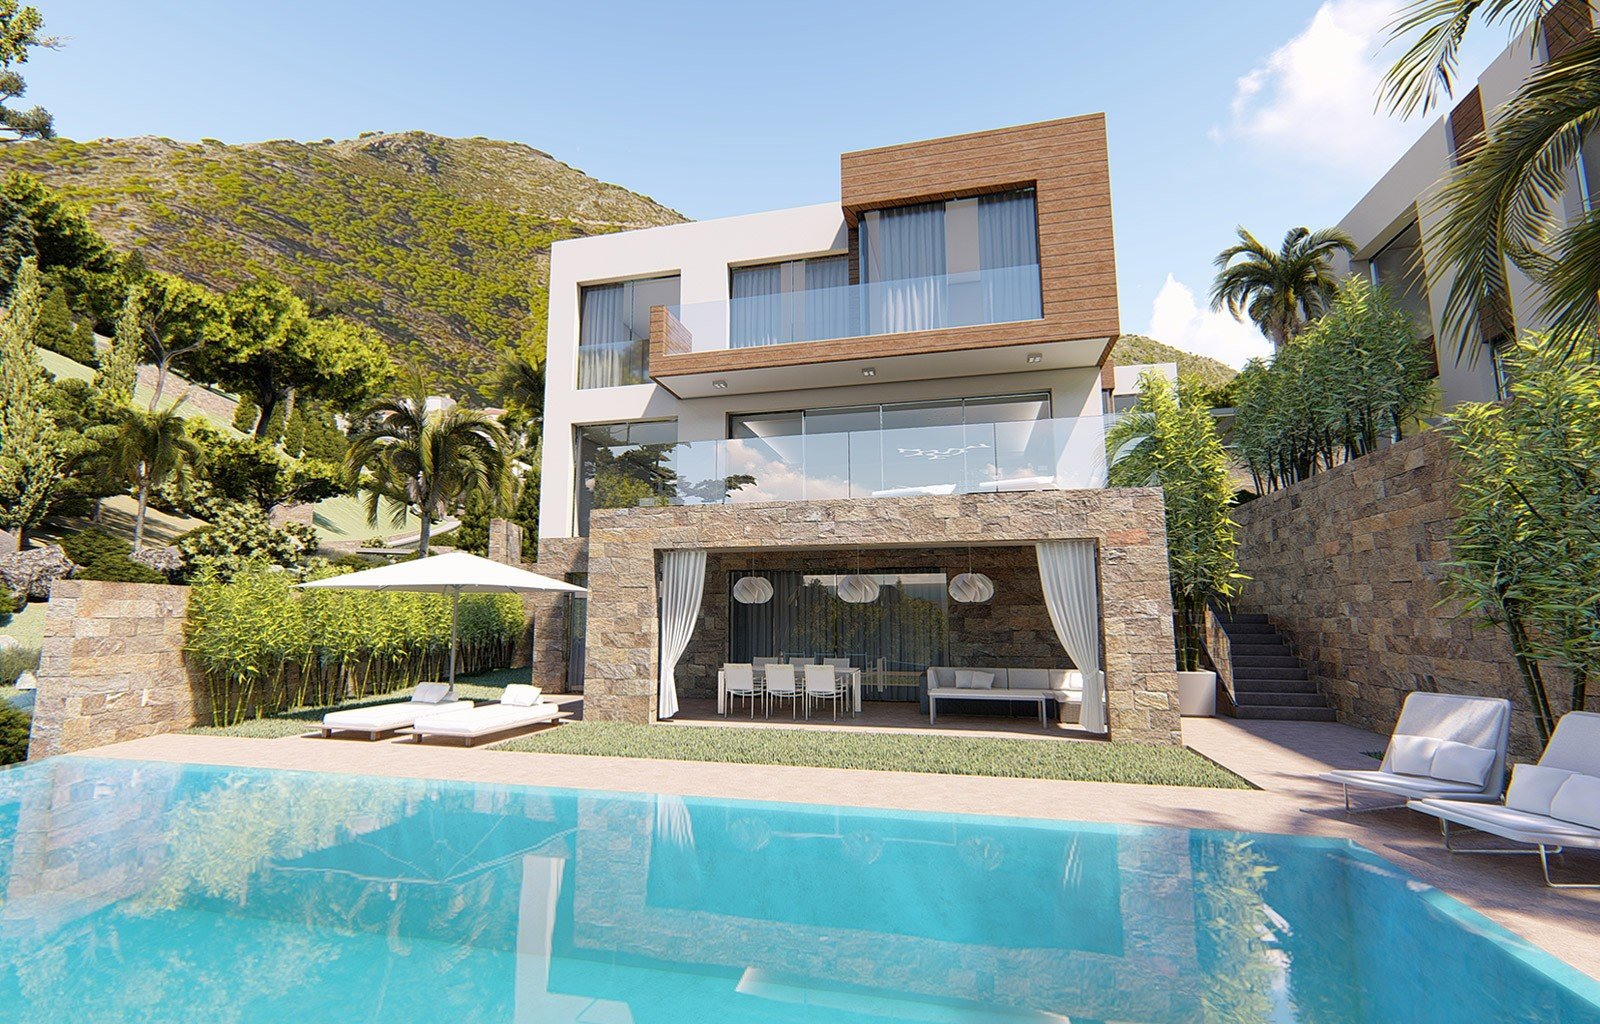 Villa with Sea Views for sale in Mijas Pueblo - MAS434831